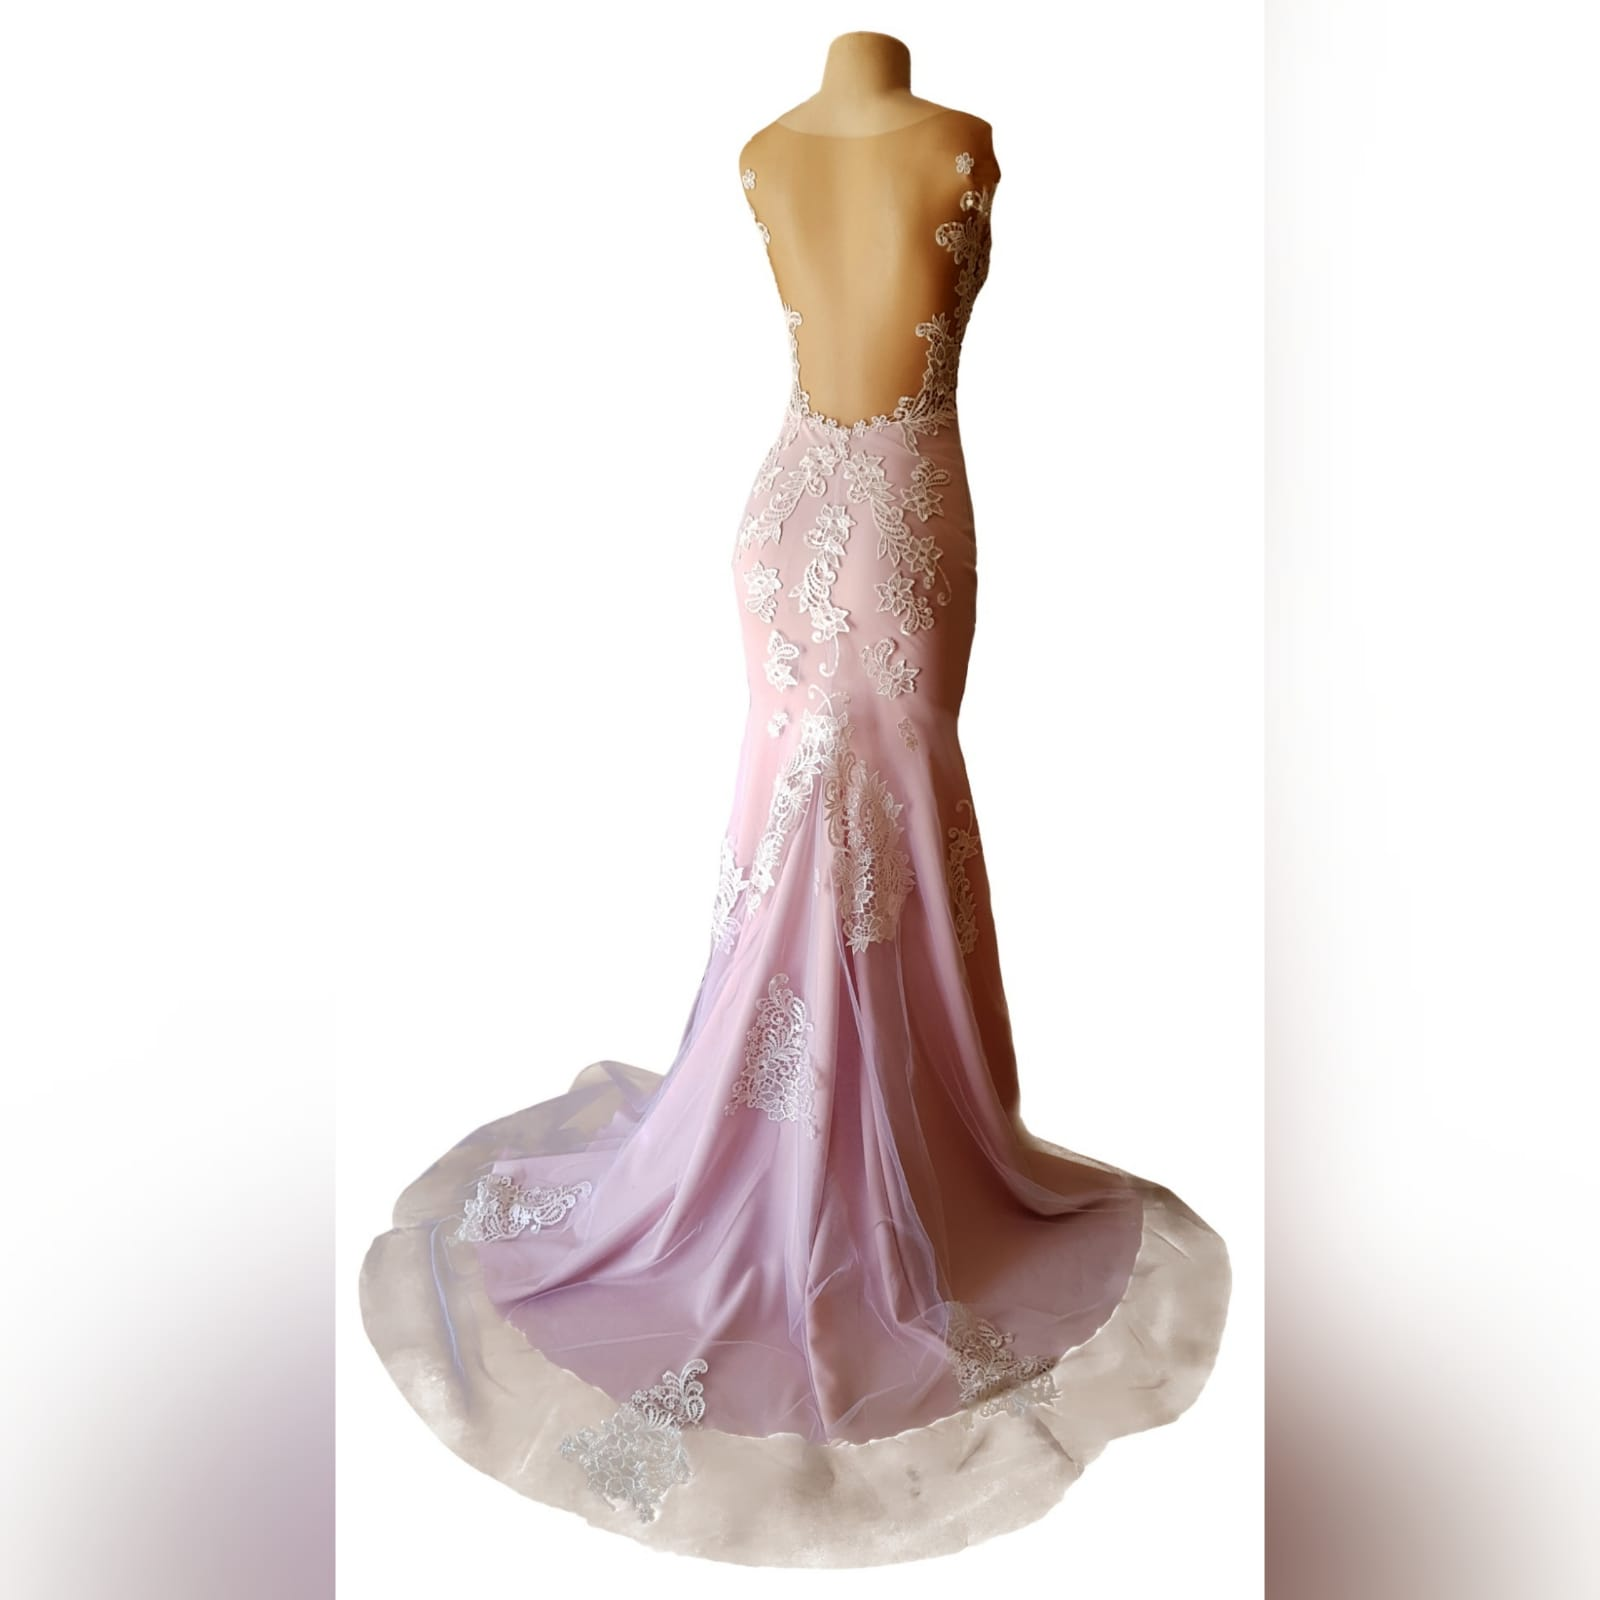 Pink and white lace soft mermaid prom dress 8 pink and white lace soft mermaid prom dress with an illusion bodice detailed with lace, an illusion open back. Bottom with an overlayer of tulle detailed with lace and a train.